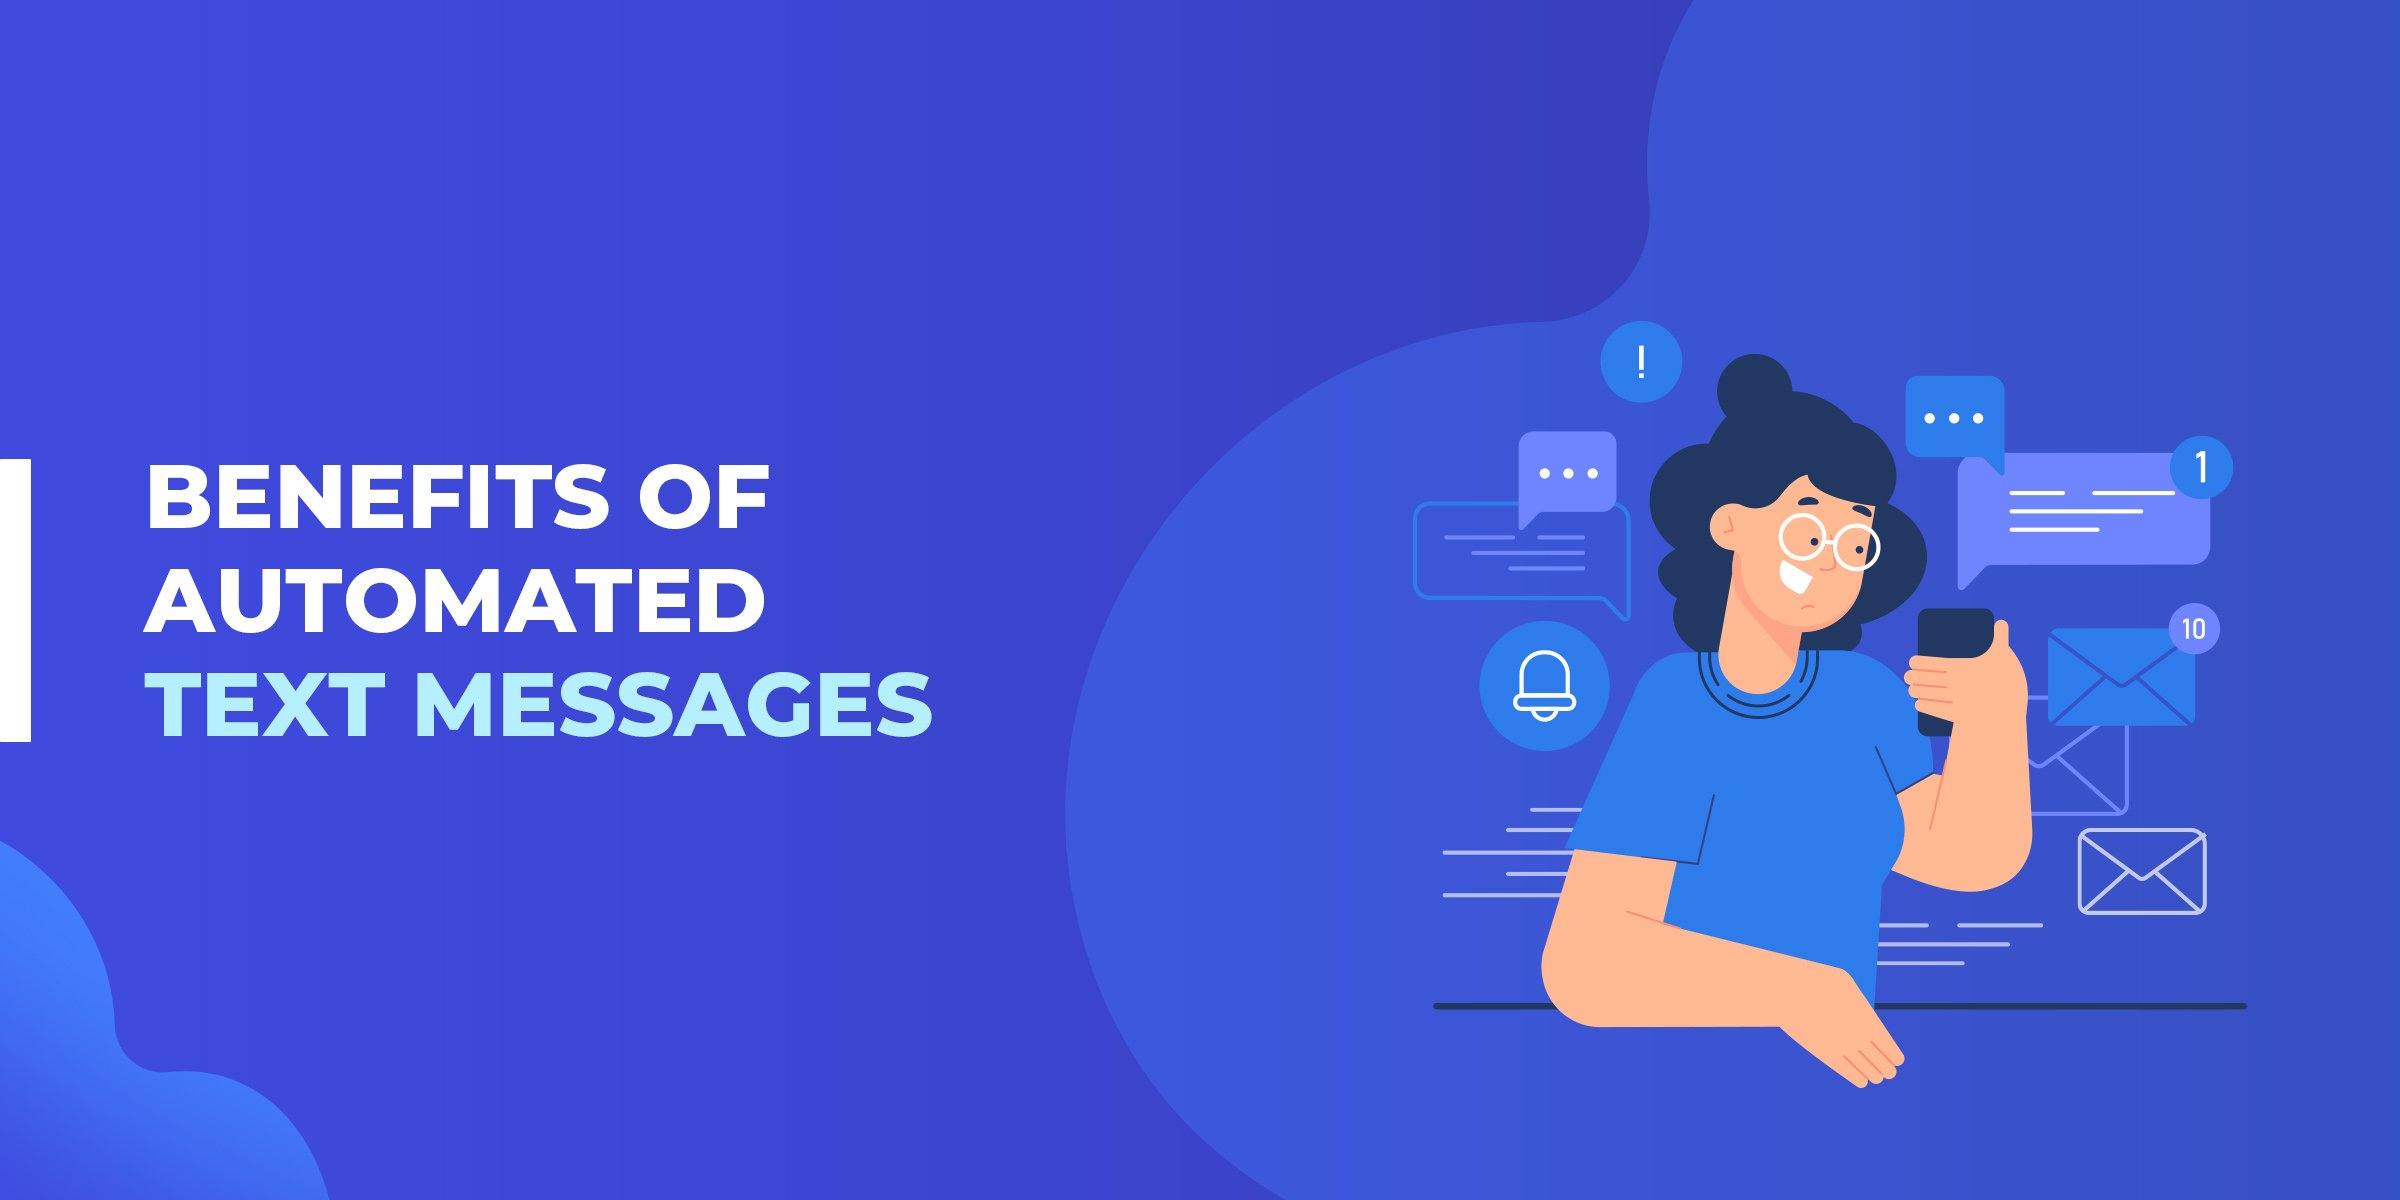 Benefits of Automated Text Messages